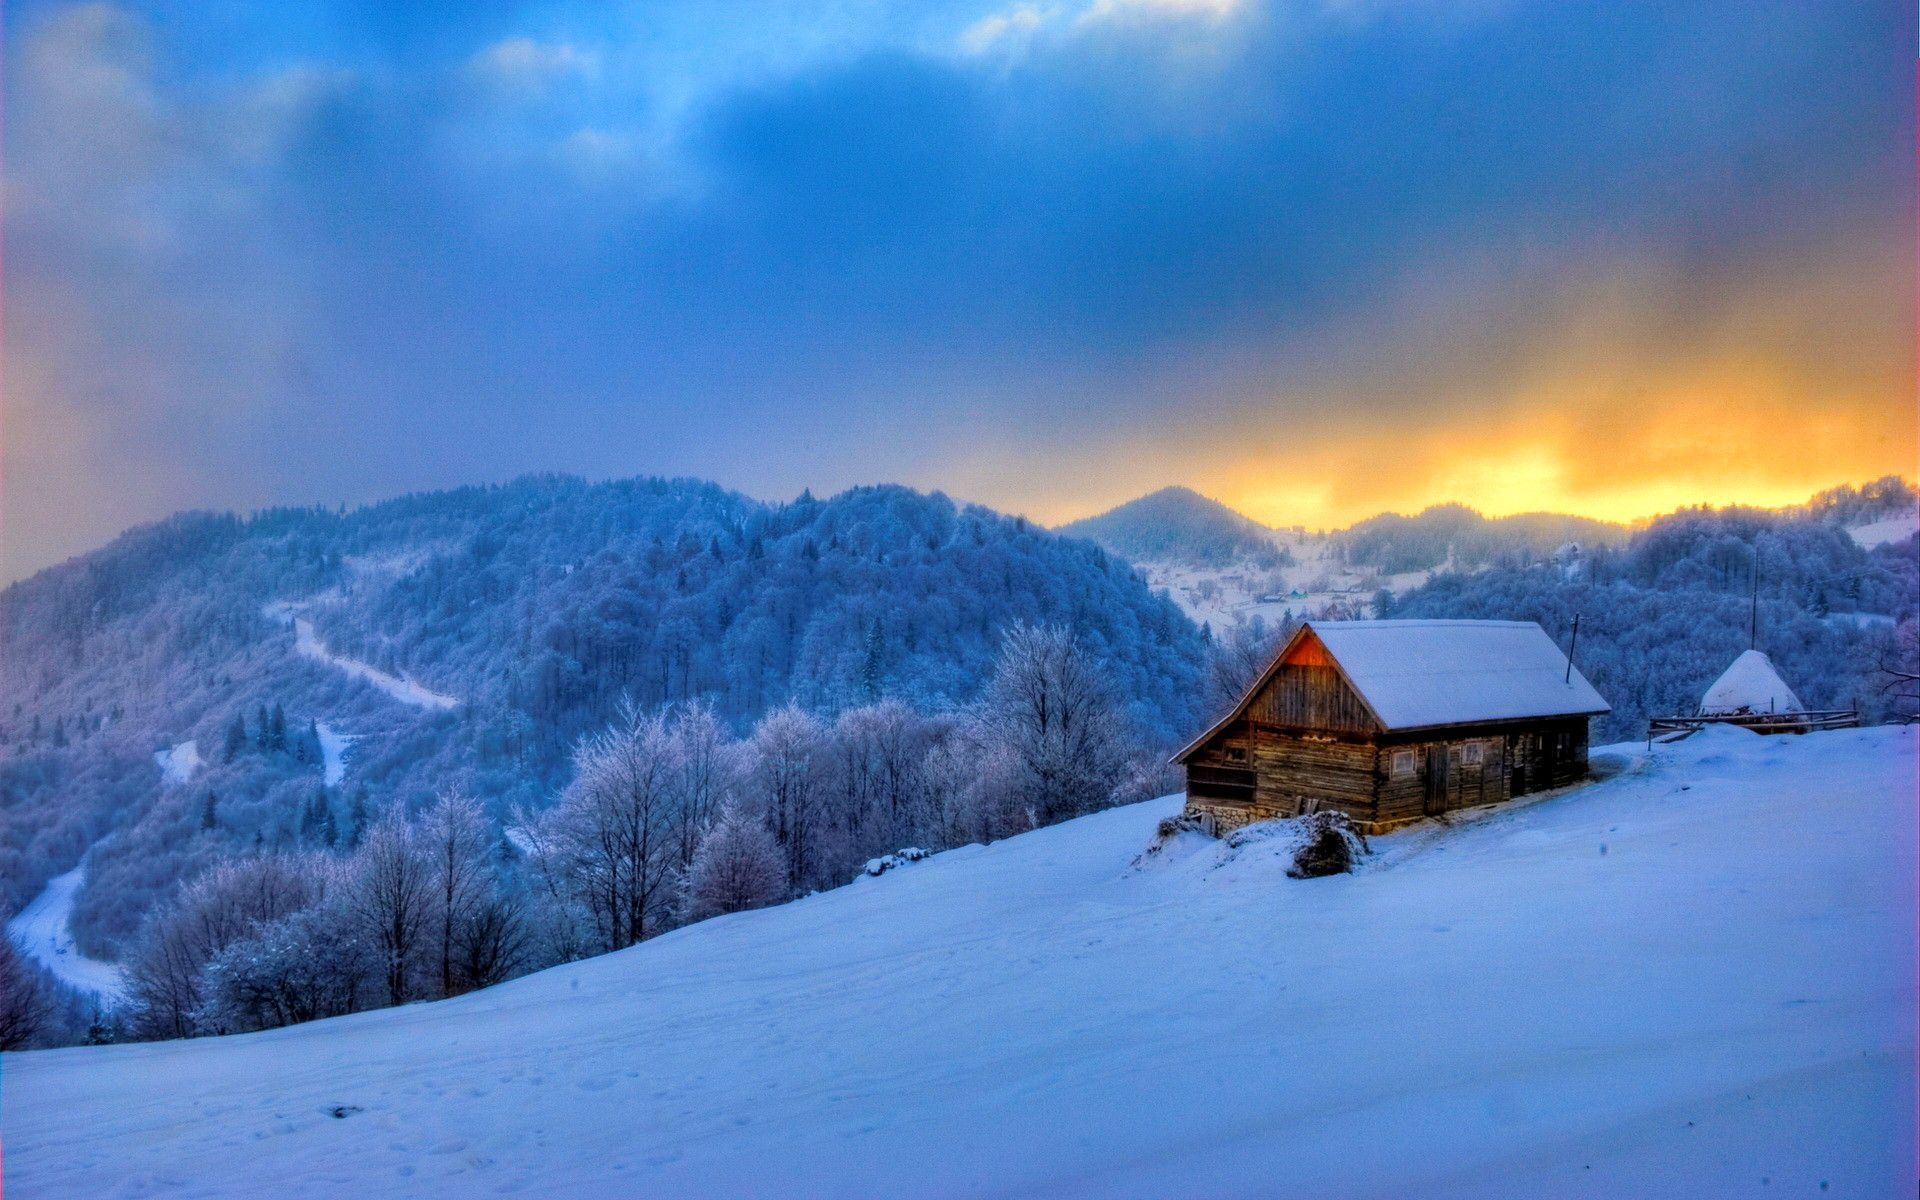 Mountain Cabin In Winter Hd Wallpaper Background Image 1920x1200 Id 762374 Wallpaper Abyss